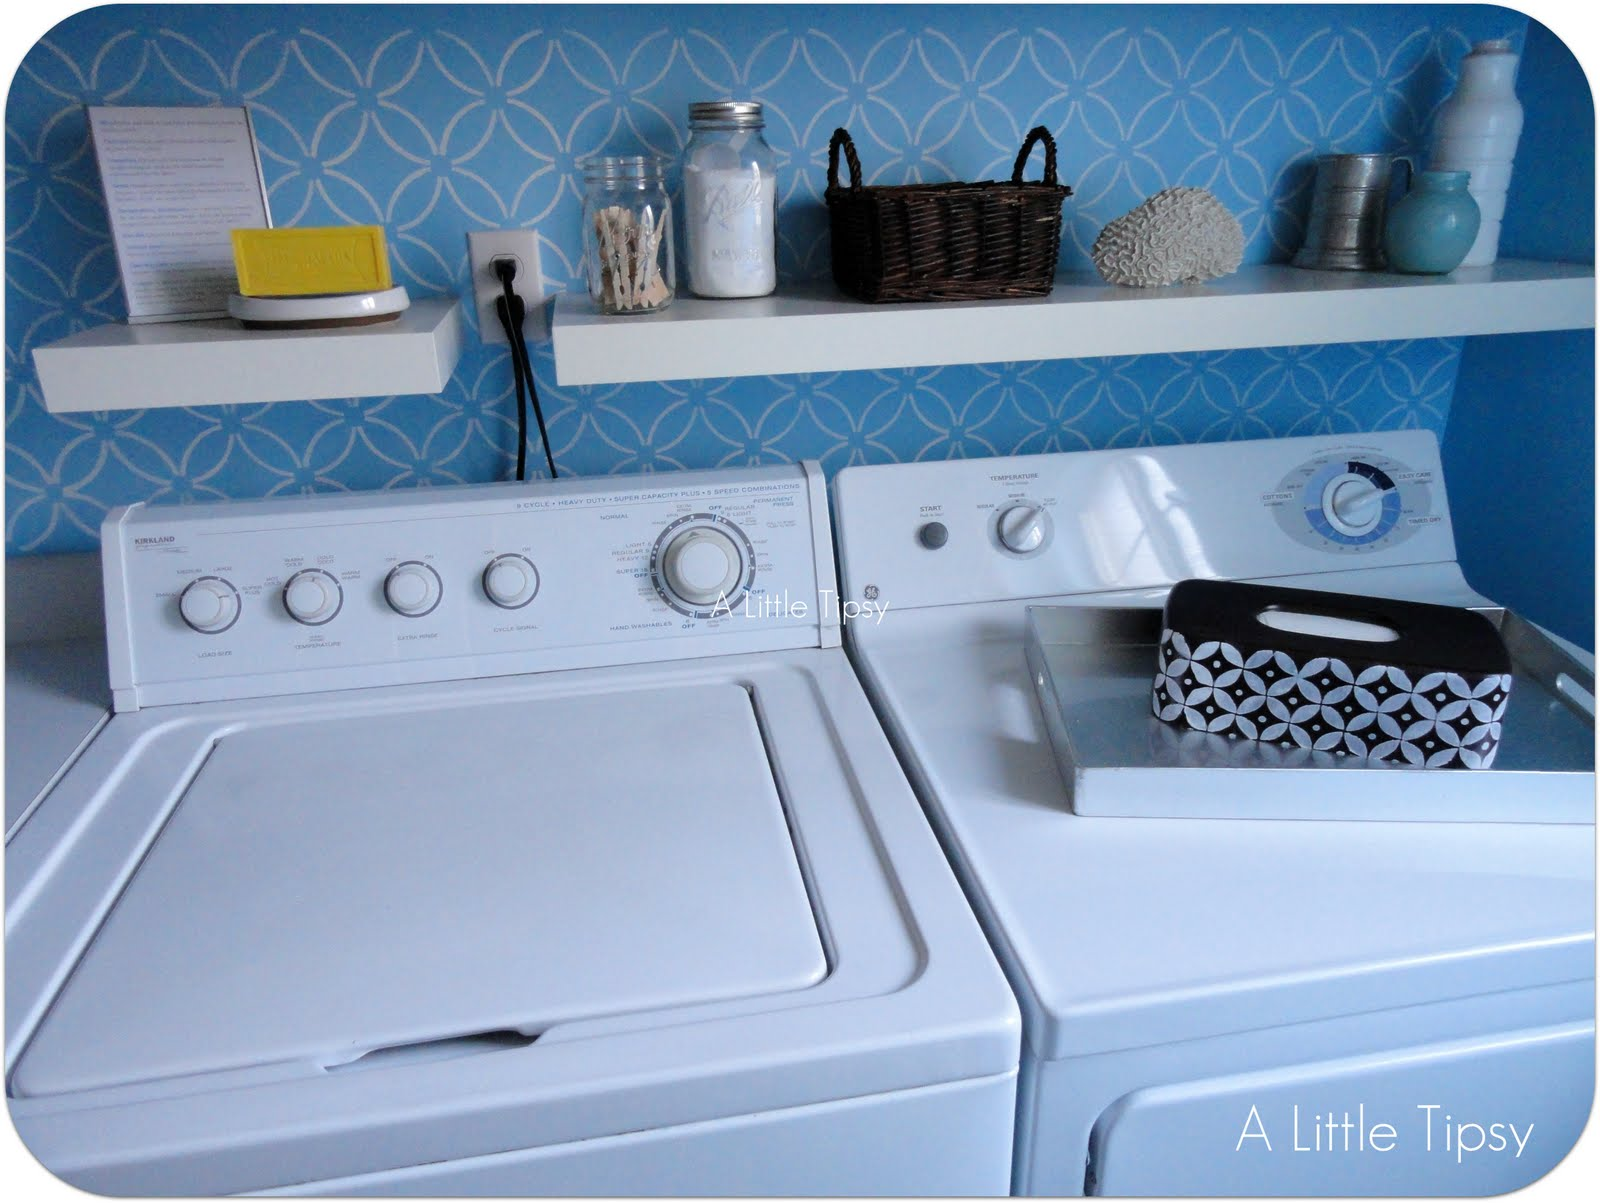 Laundry Room: Three Projects Under $5 - A Little Tipsy